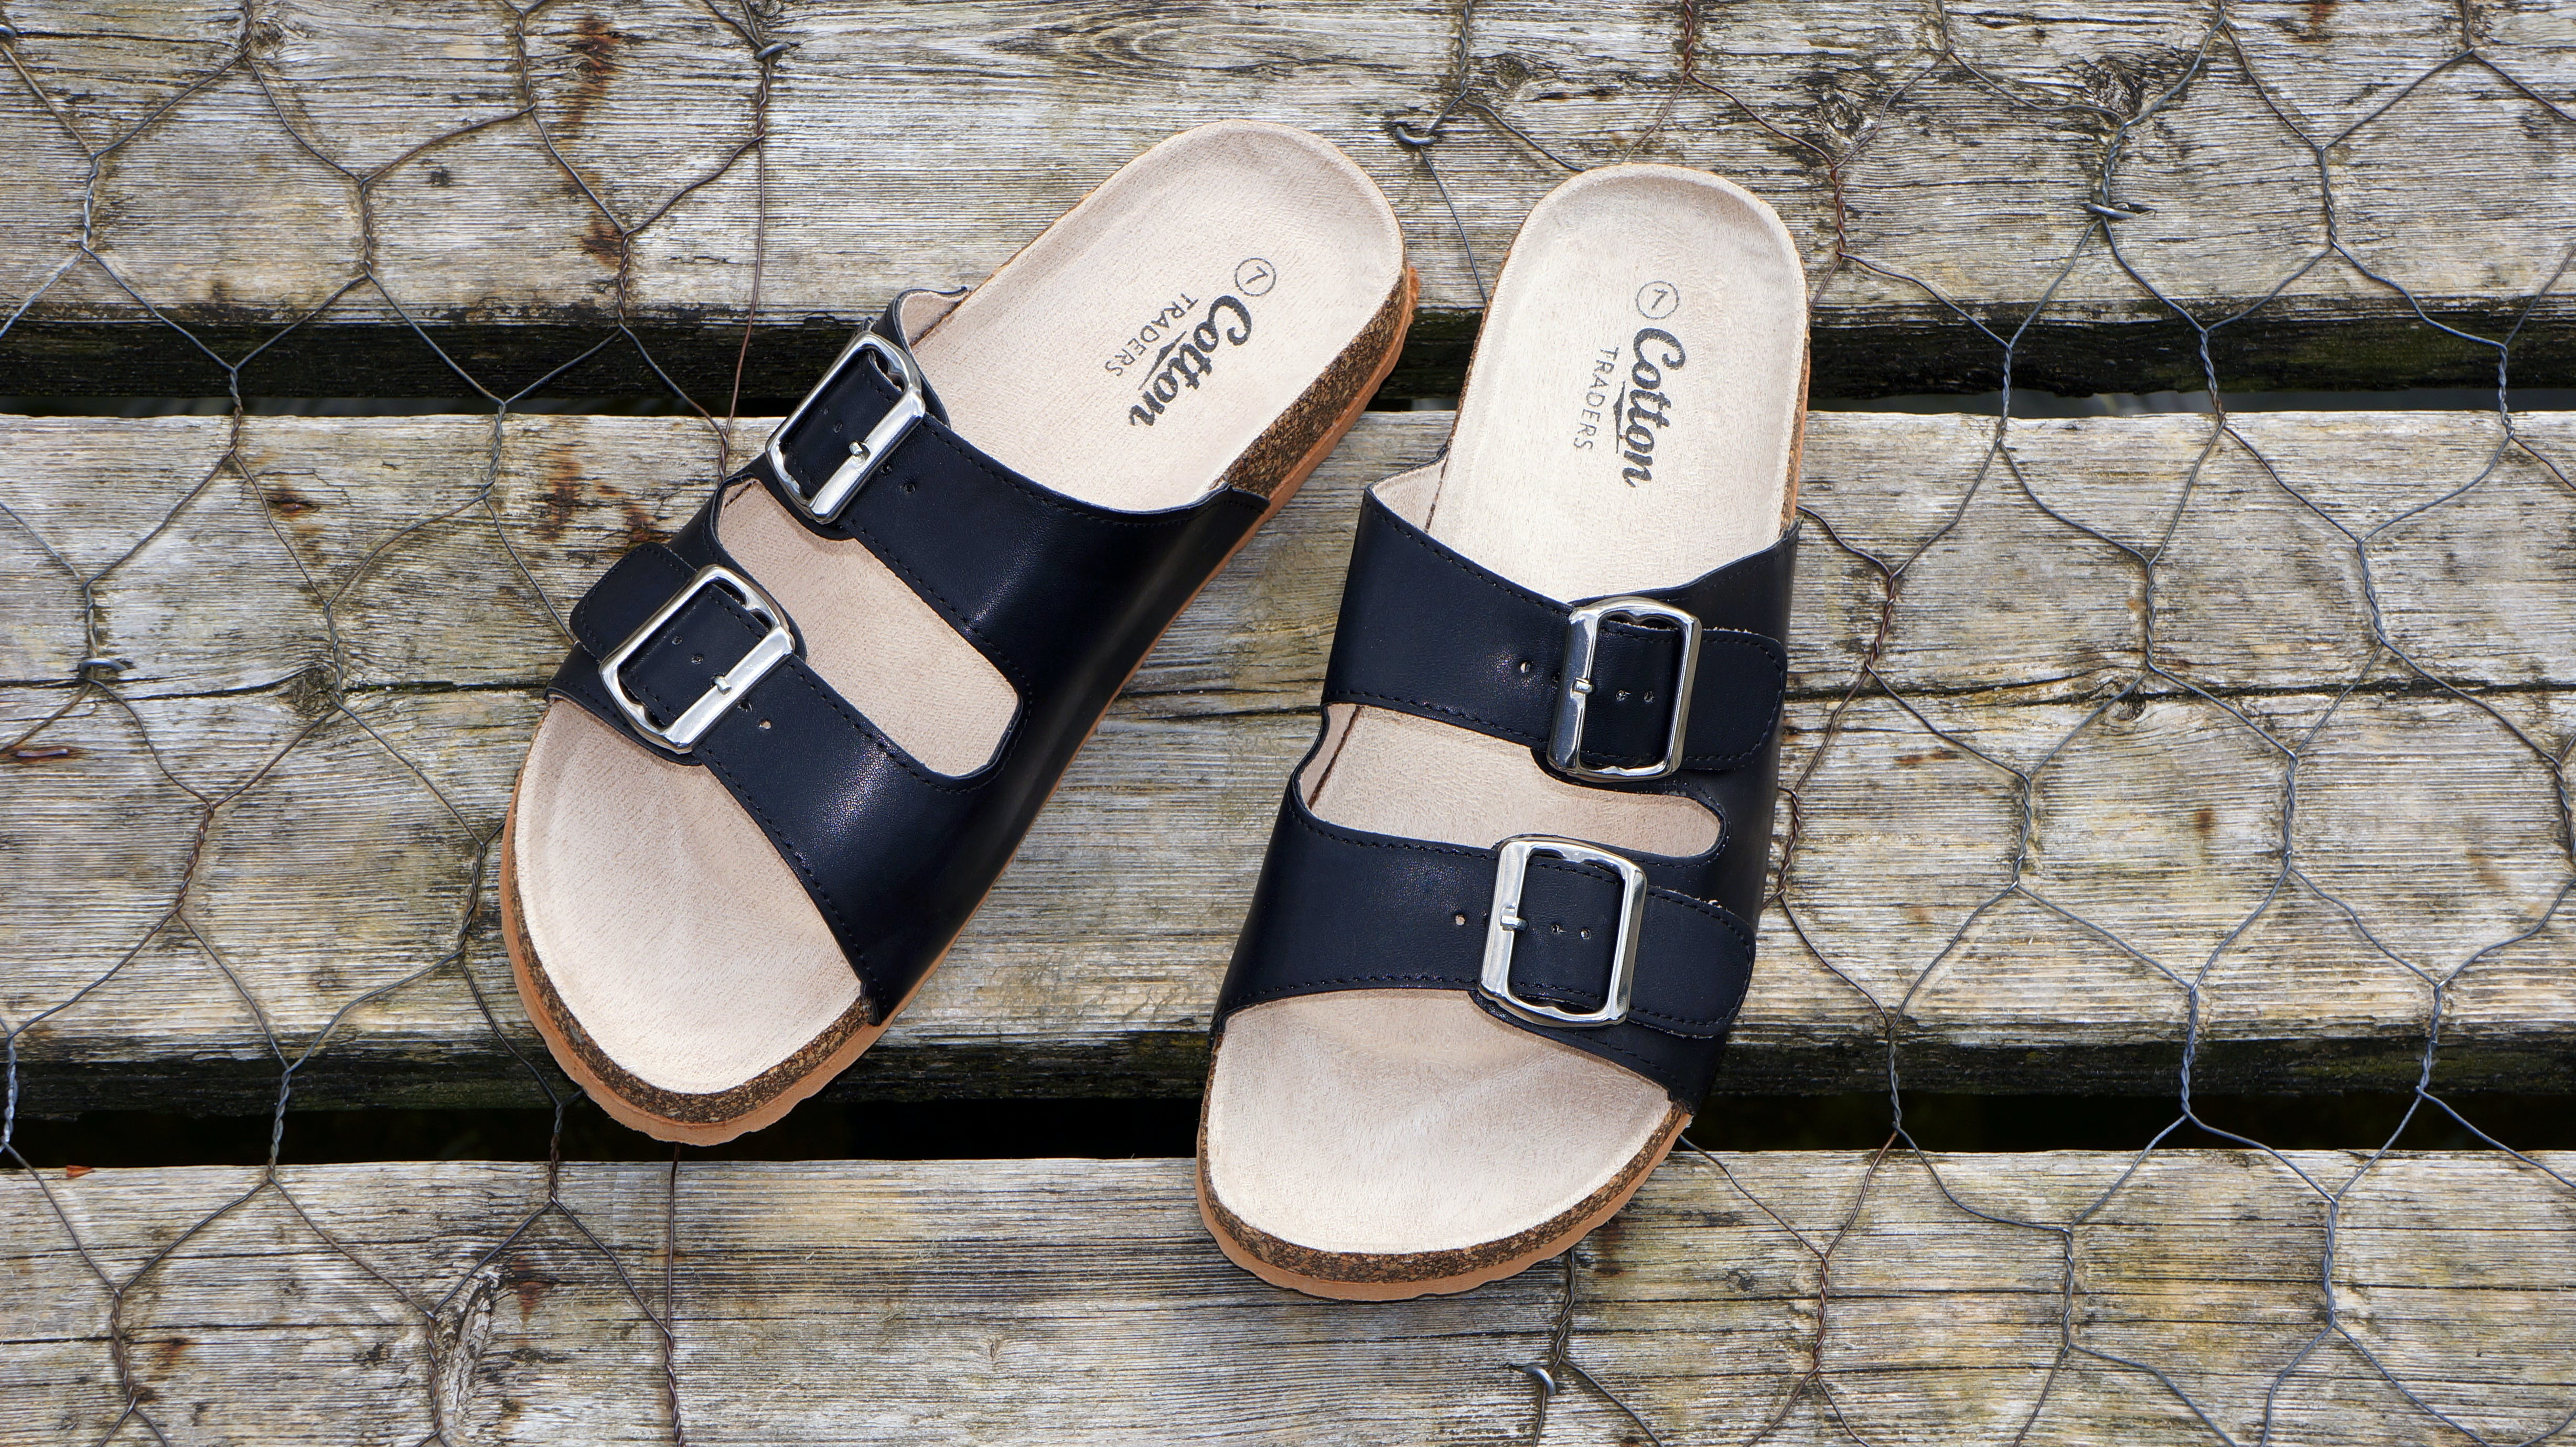 Brown-and-black Cotton Leather Sandals on Gray Metal Screen